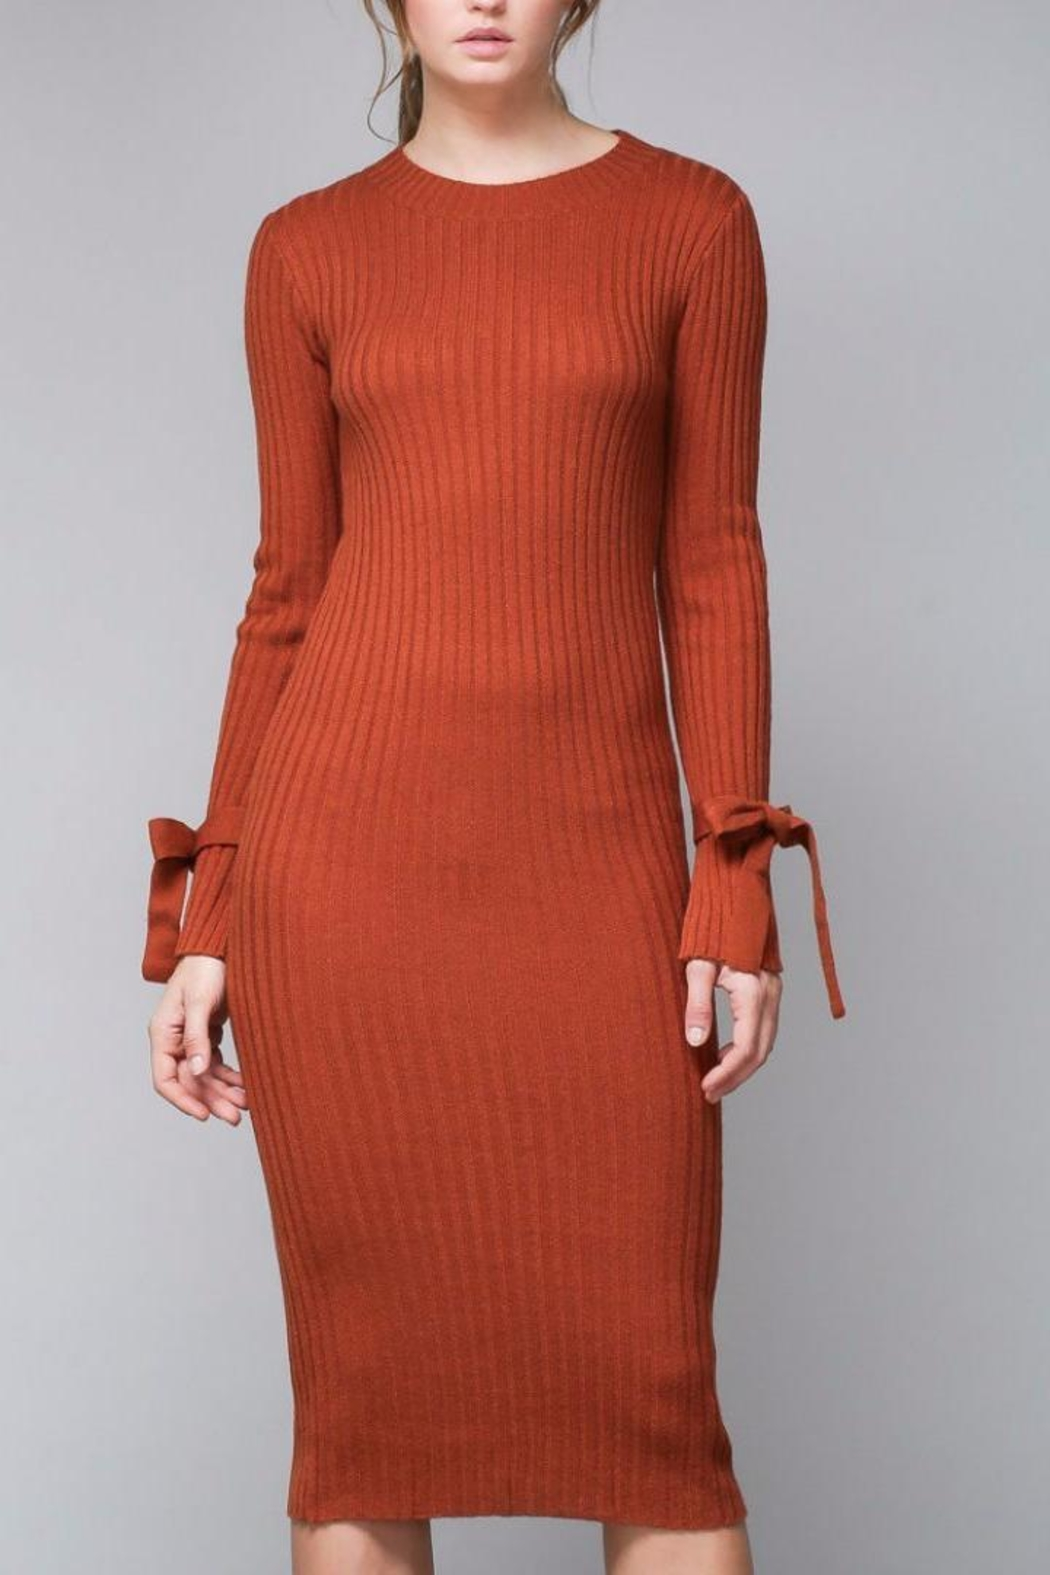 Do & Be Pumpkin Sweater Dress - Main Image